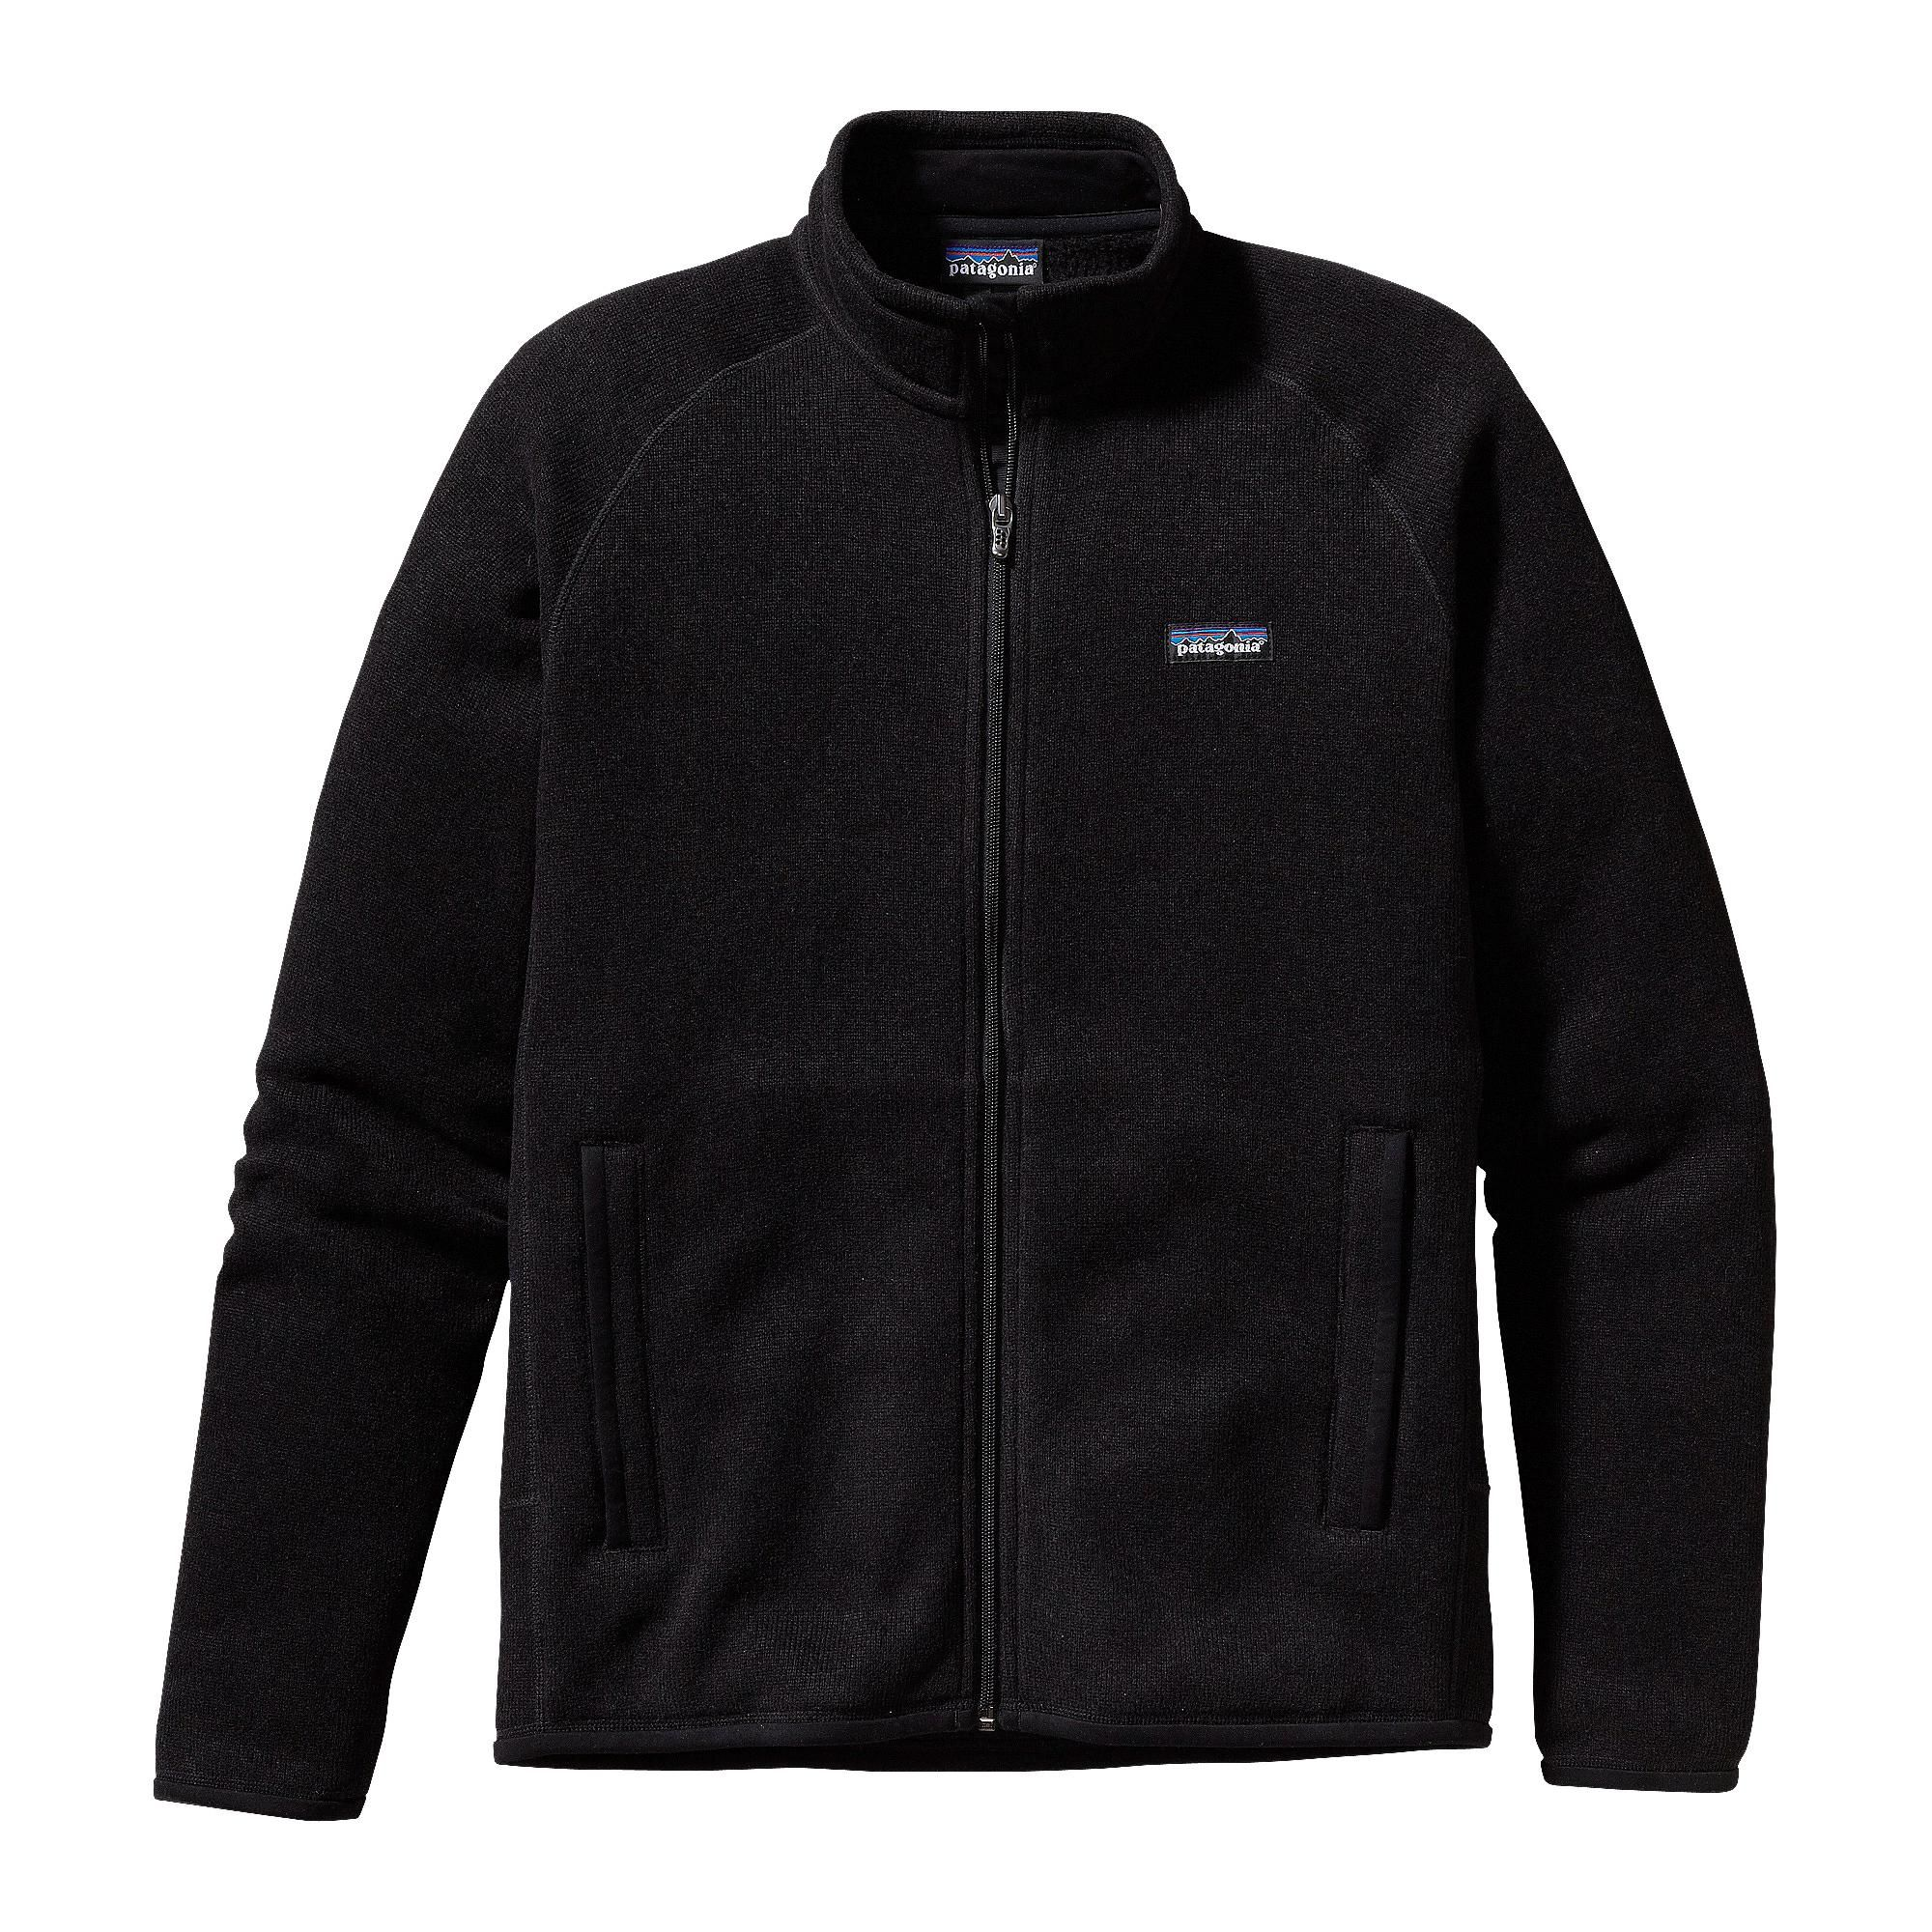 Men's Better Sweater® Fleece Jacket | Warm, We and The o'jays